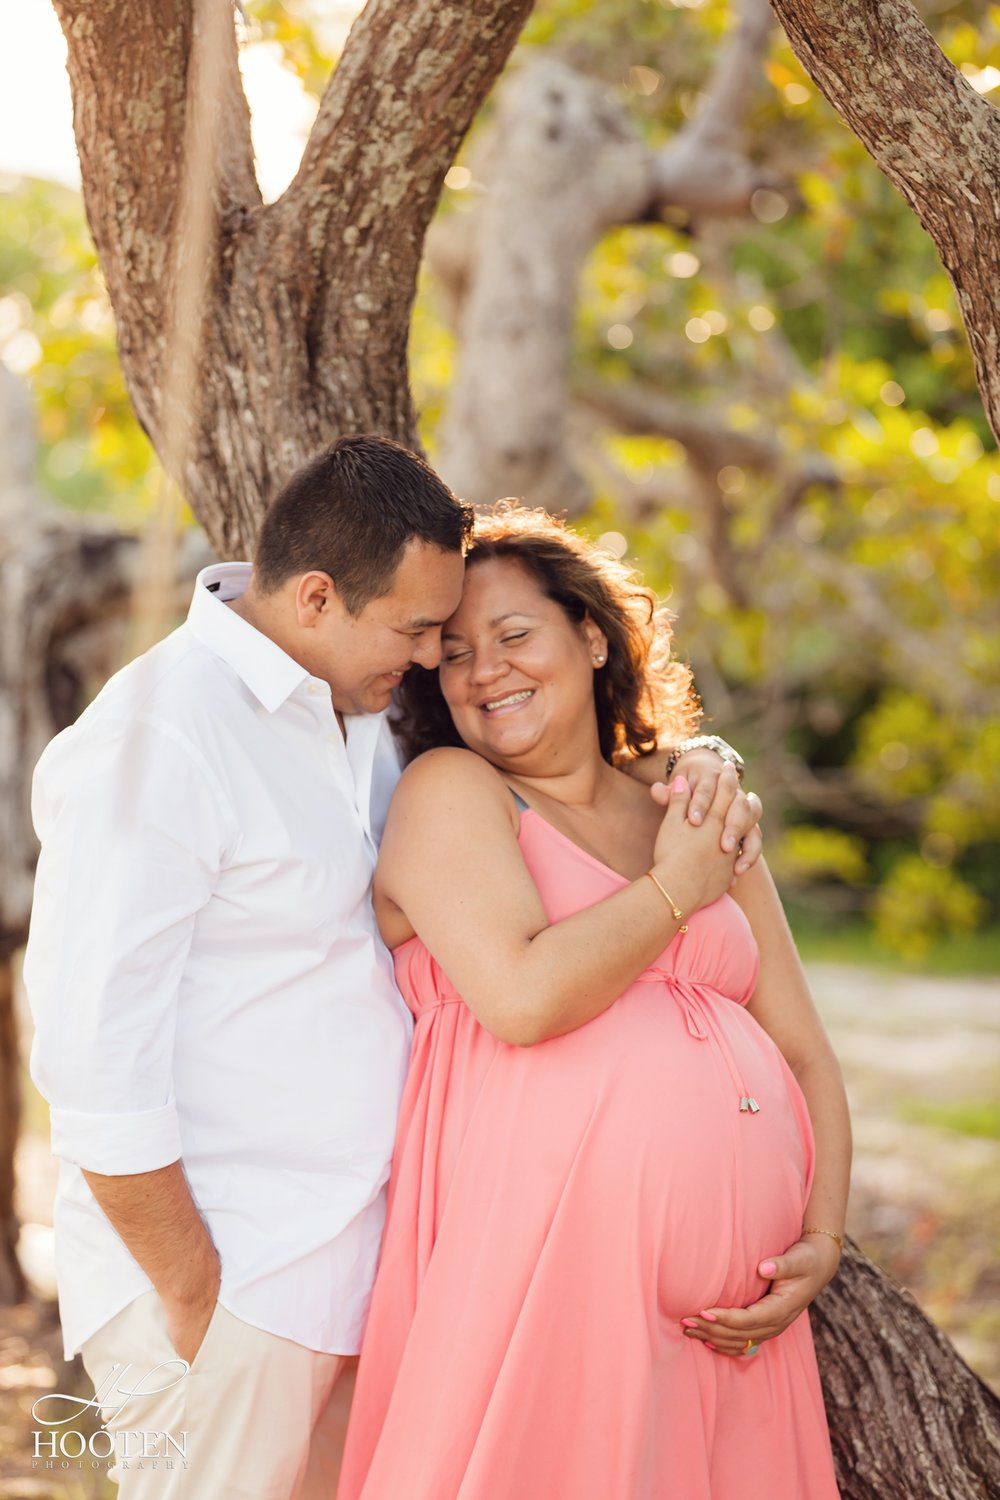 Miami-Maternity-Photography-Abdor-8103.jpg